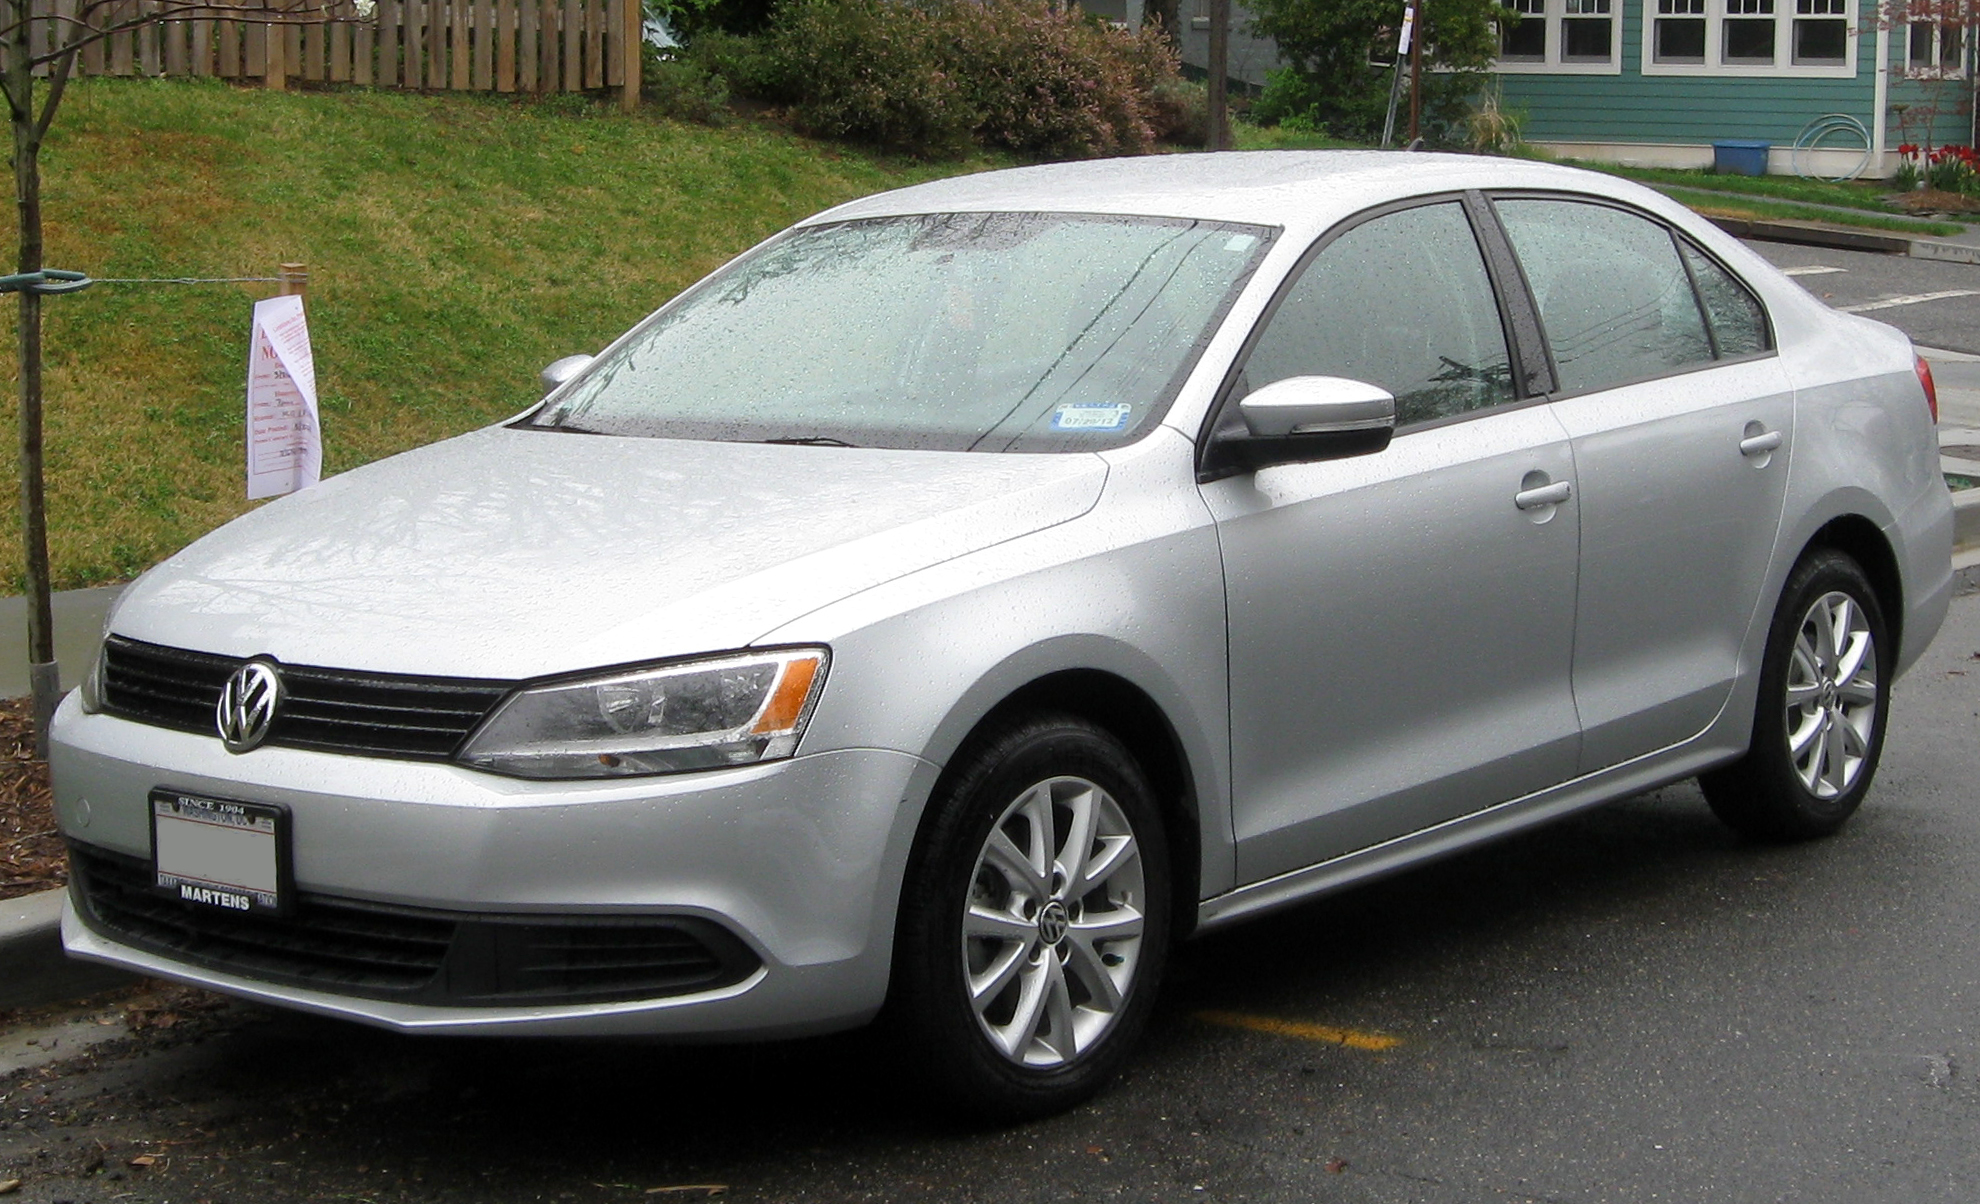 Volkswagen Jetta sedan Wallpapers HD